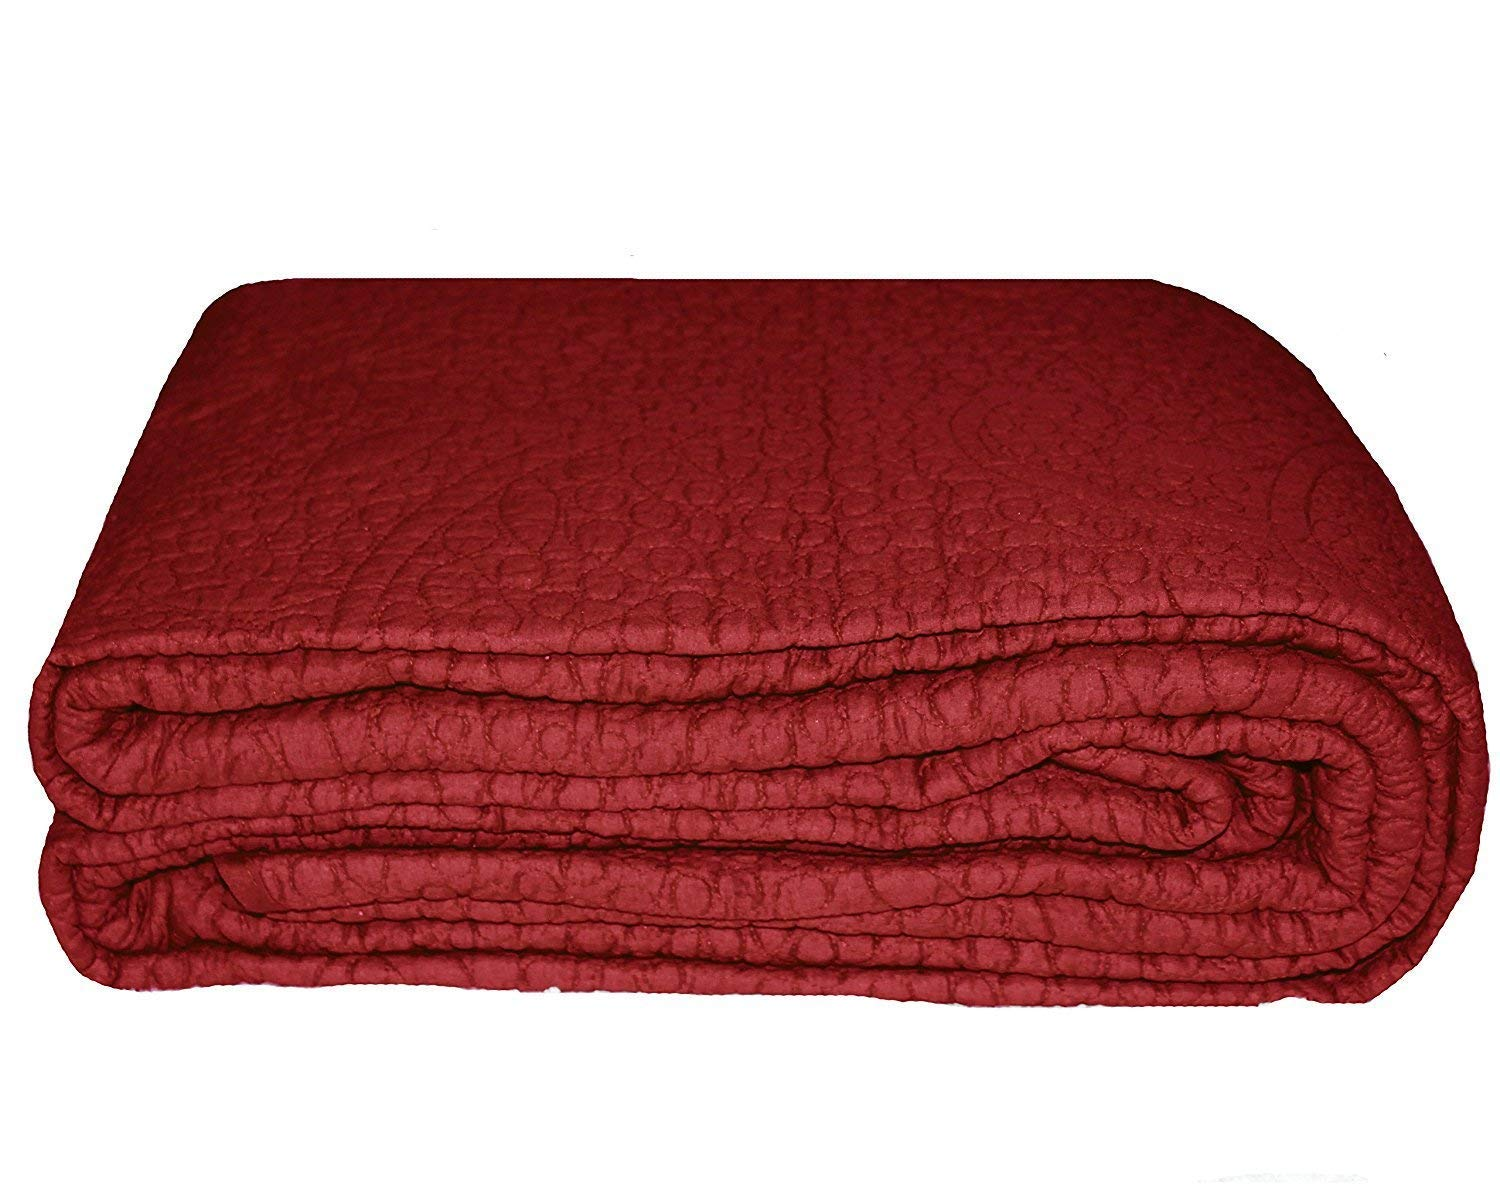 Home Must Haves Color 100/% Cotton Quilt Bedspread Bed Cover Coverlet 3-Piece Set Queen Size 90x90 Inches Burgundy